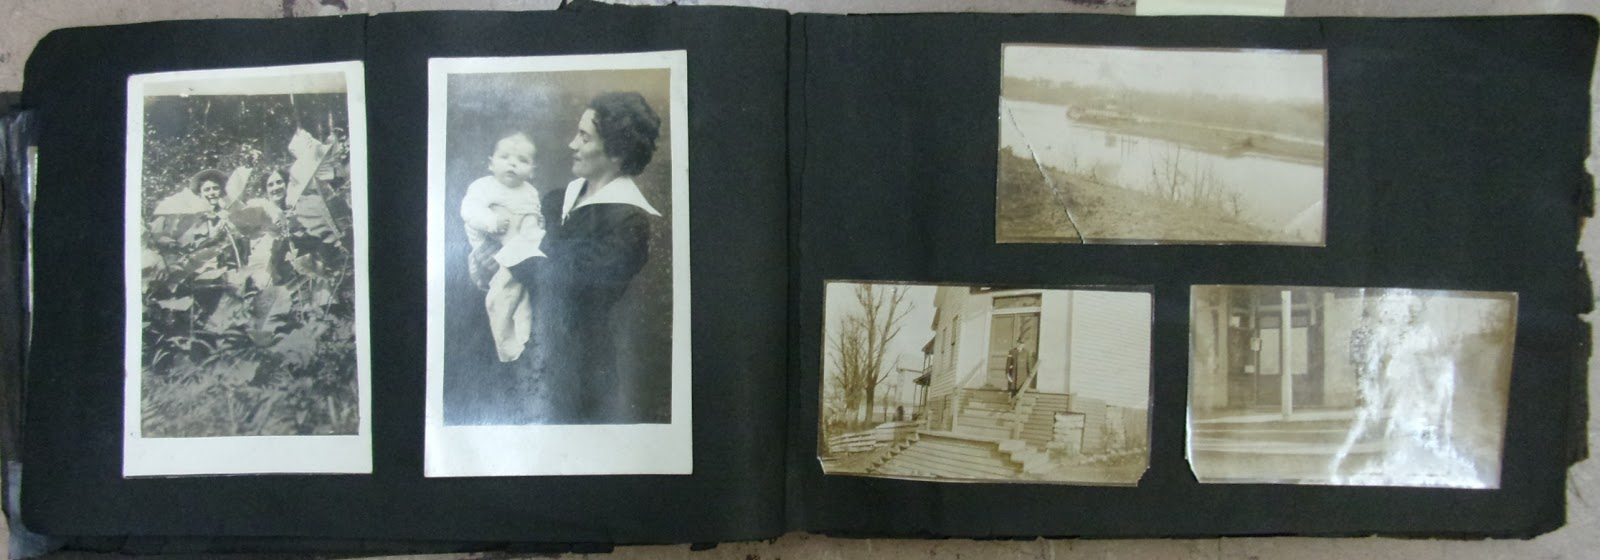 A Genealogist In The Archives Preserving Old Black Paper Photo Albums